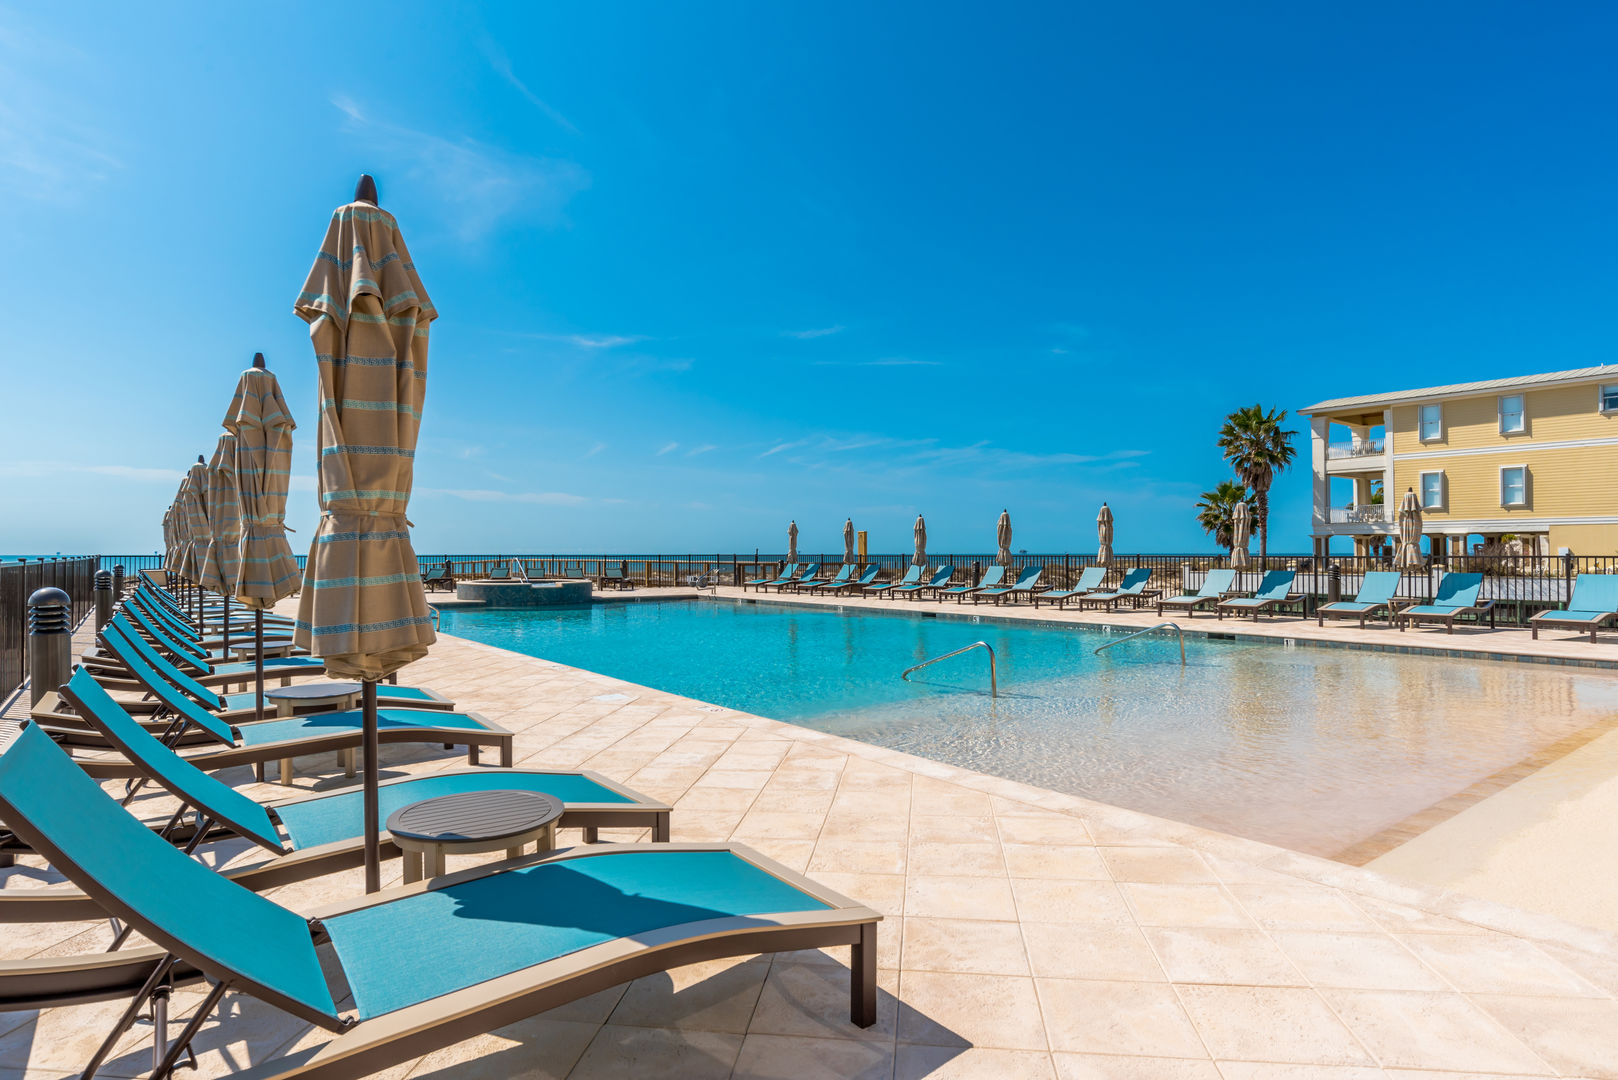 Image of Lounge Chairs and Umbrellas by Pool.